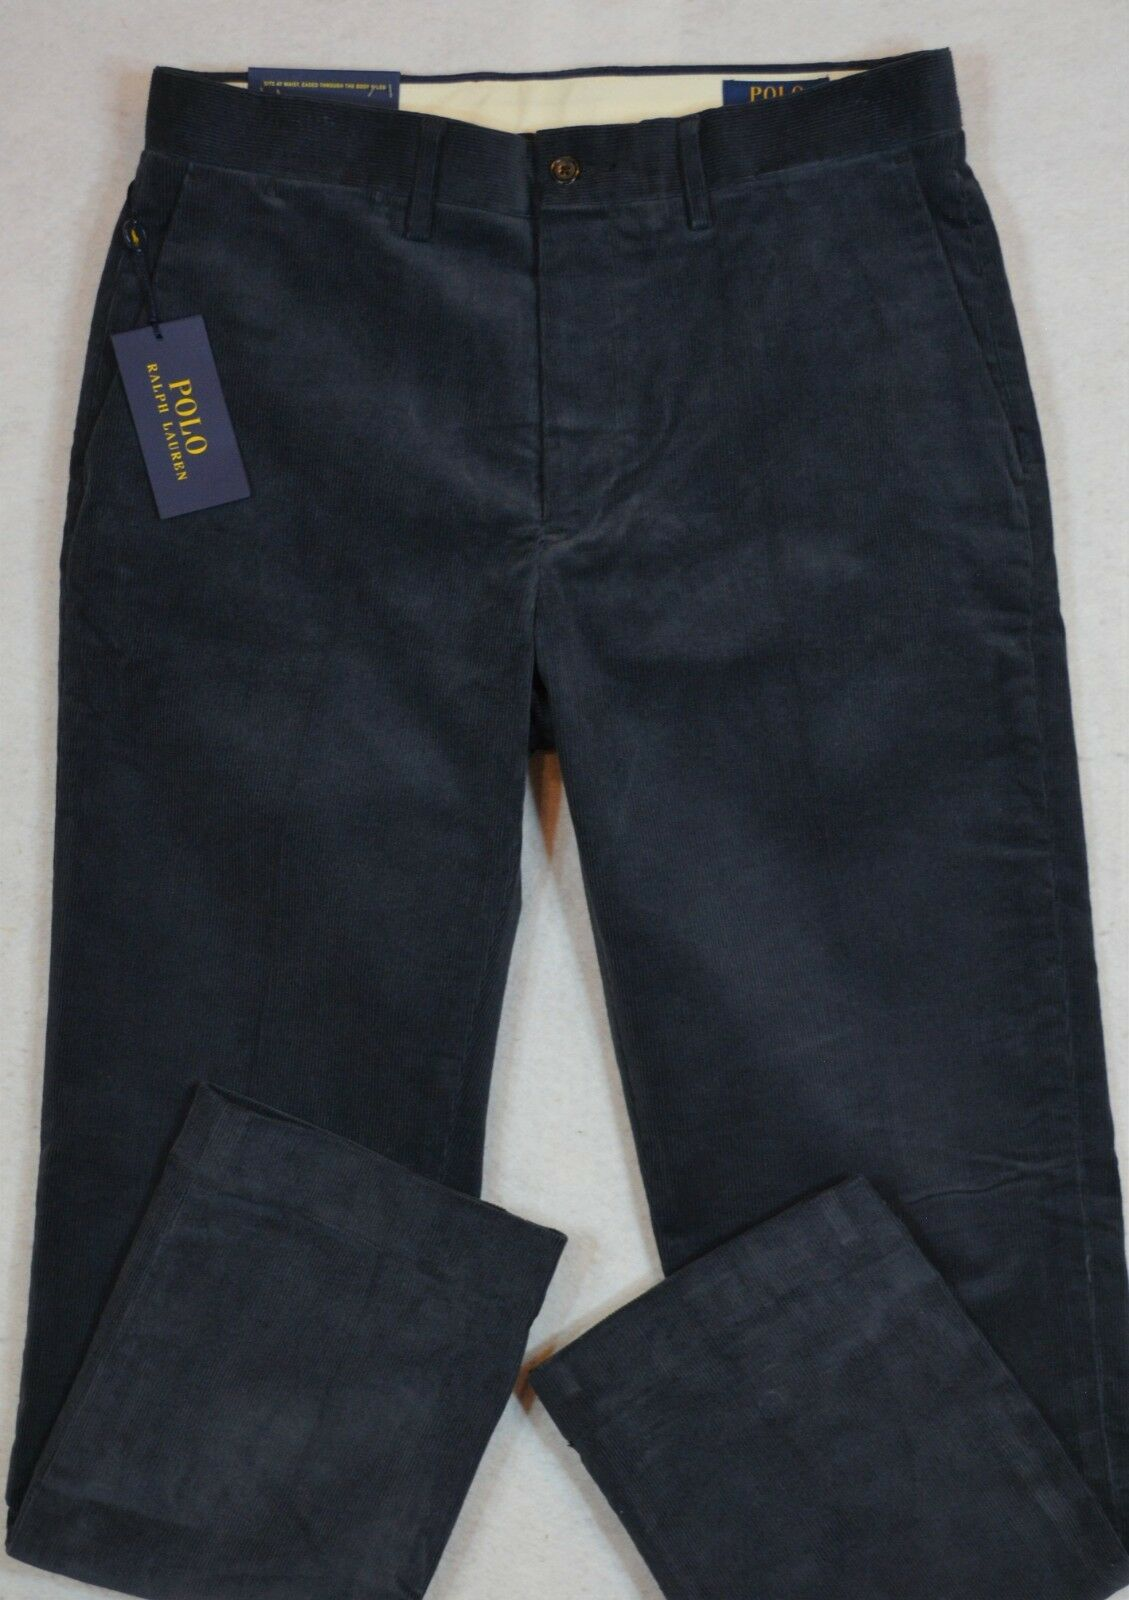 Polo Ralph Lauren Corduroy Stretch Classic Fit Pants Navy 34 30 34 32 NWT